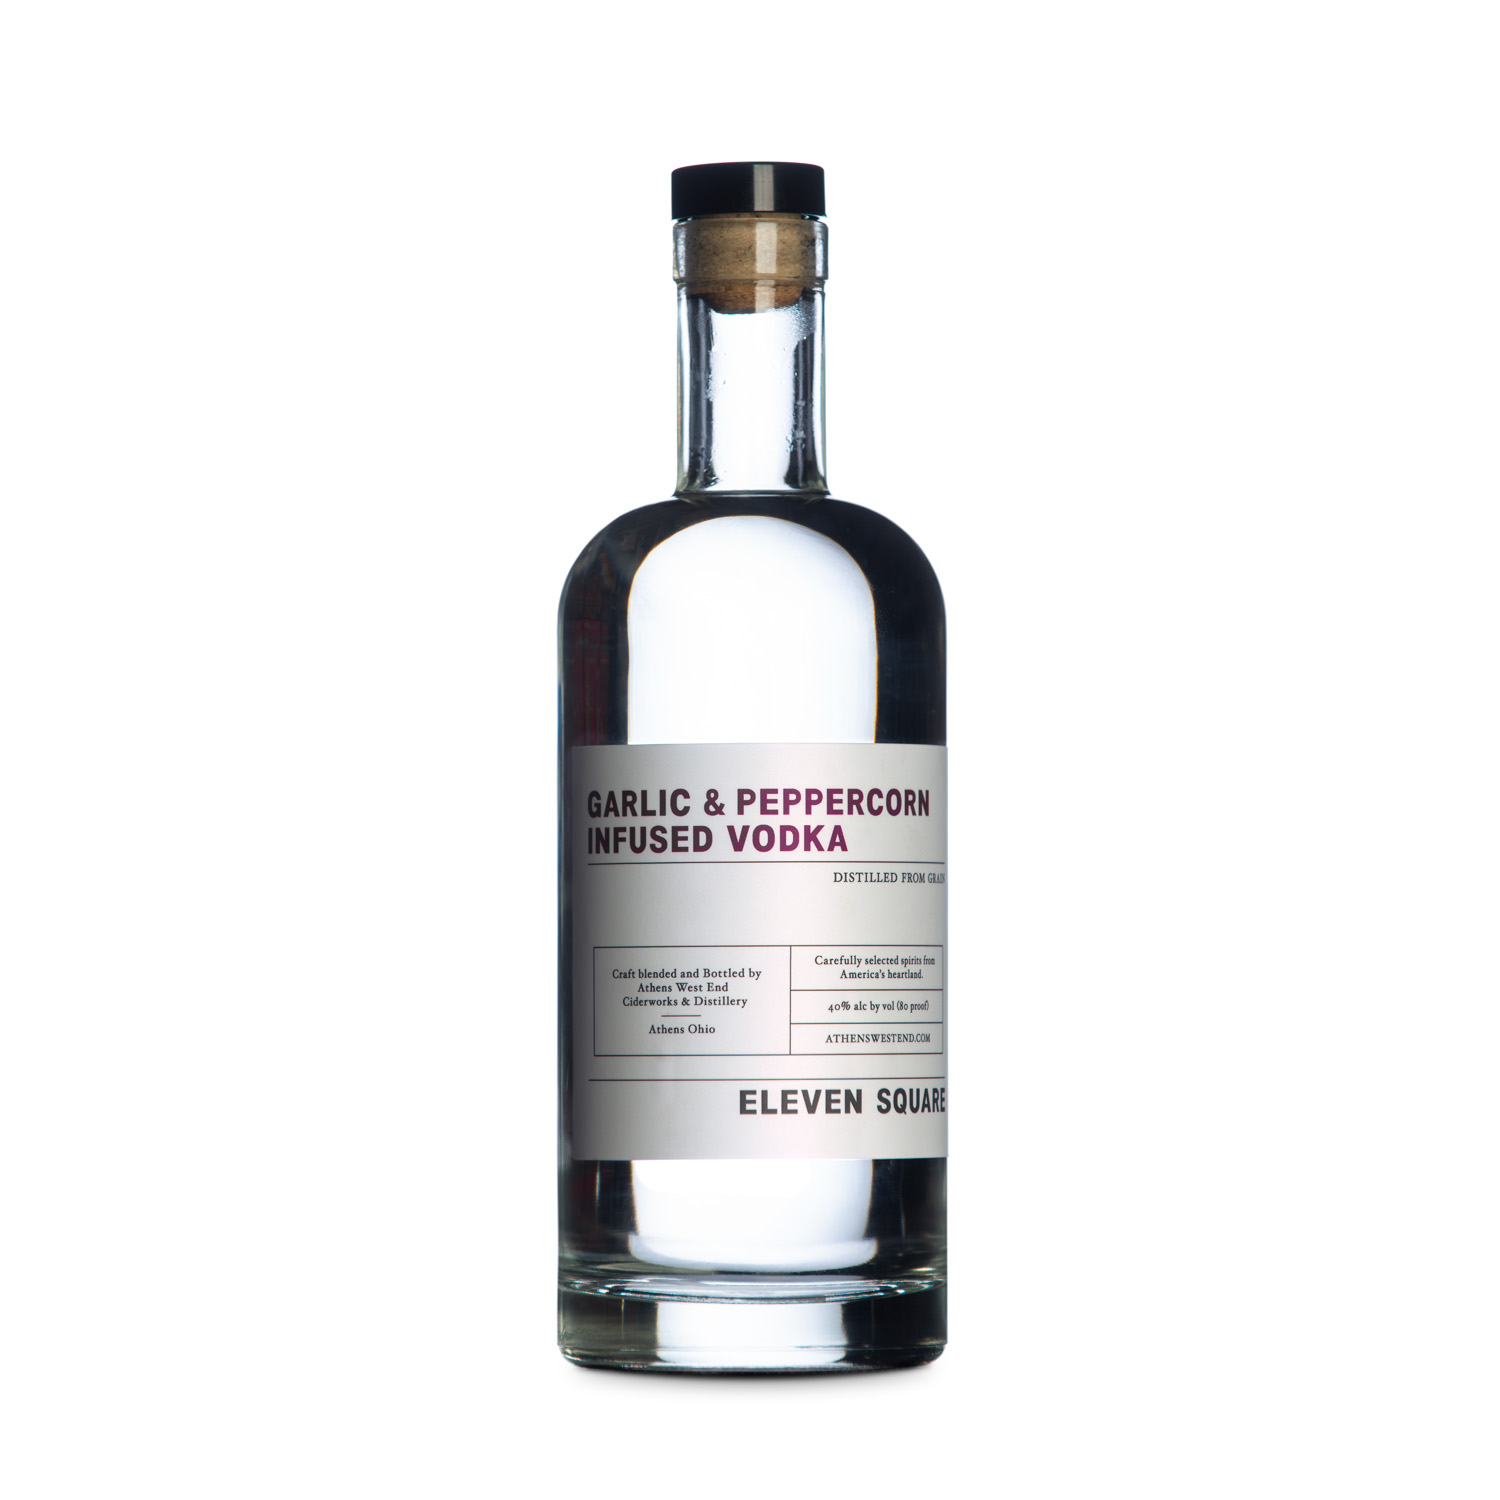 West End Distillery - Product - Eleven Square Garlic Peppercorn Vodka